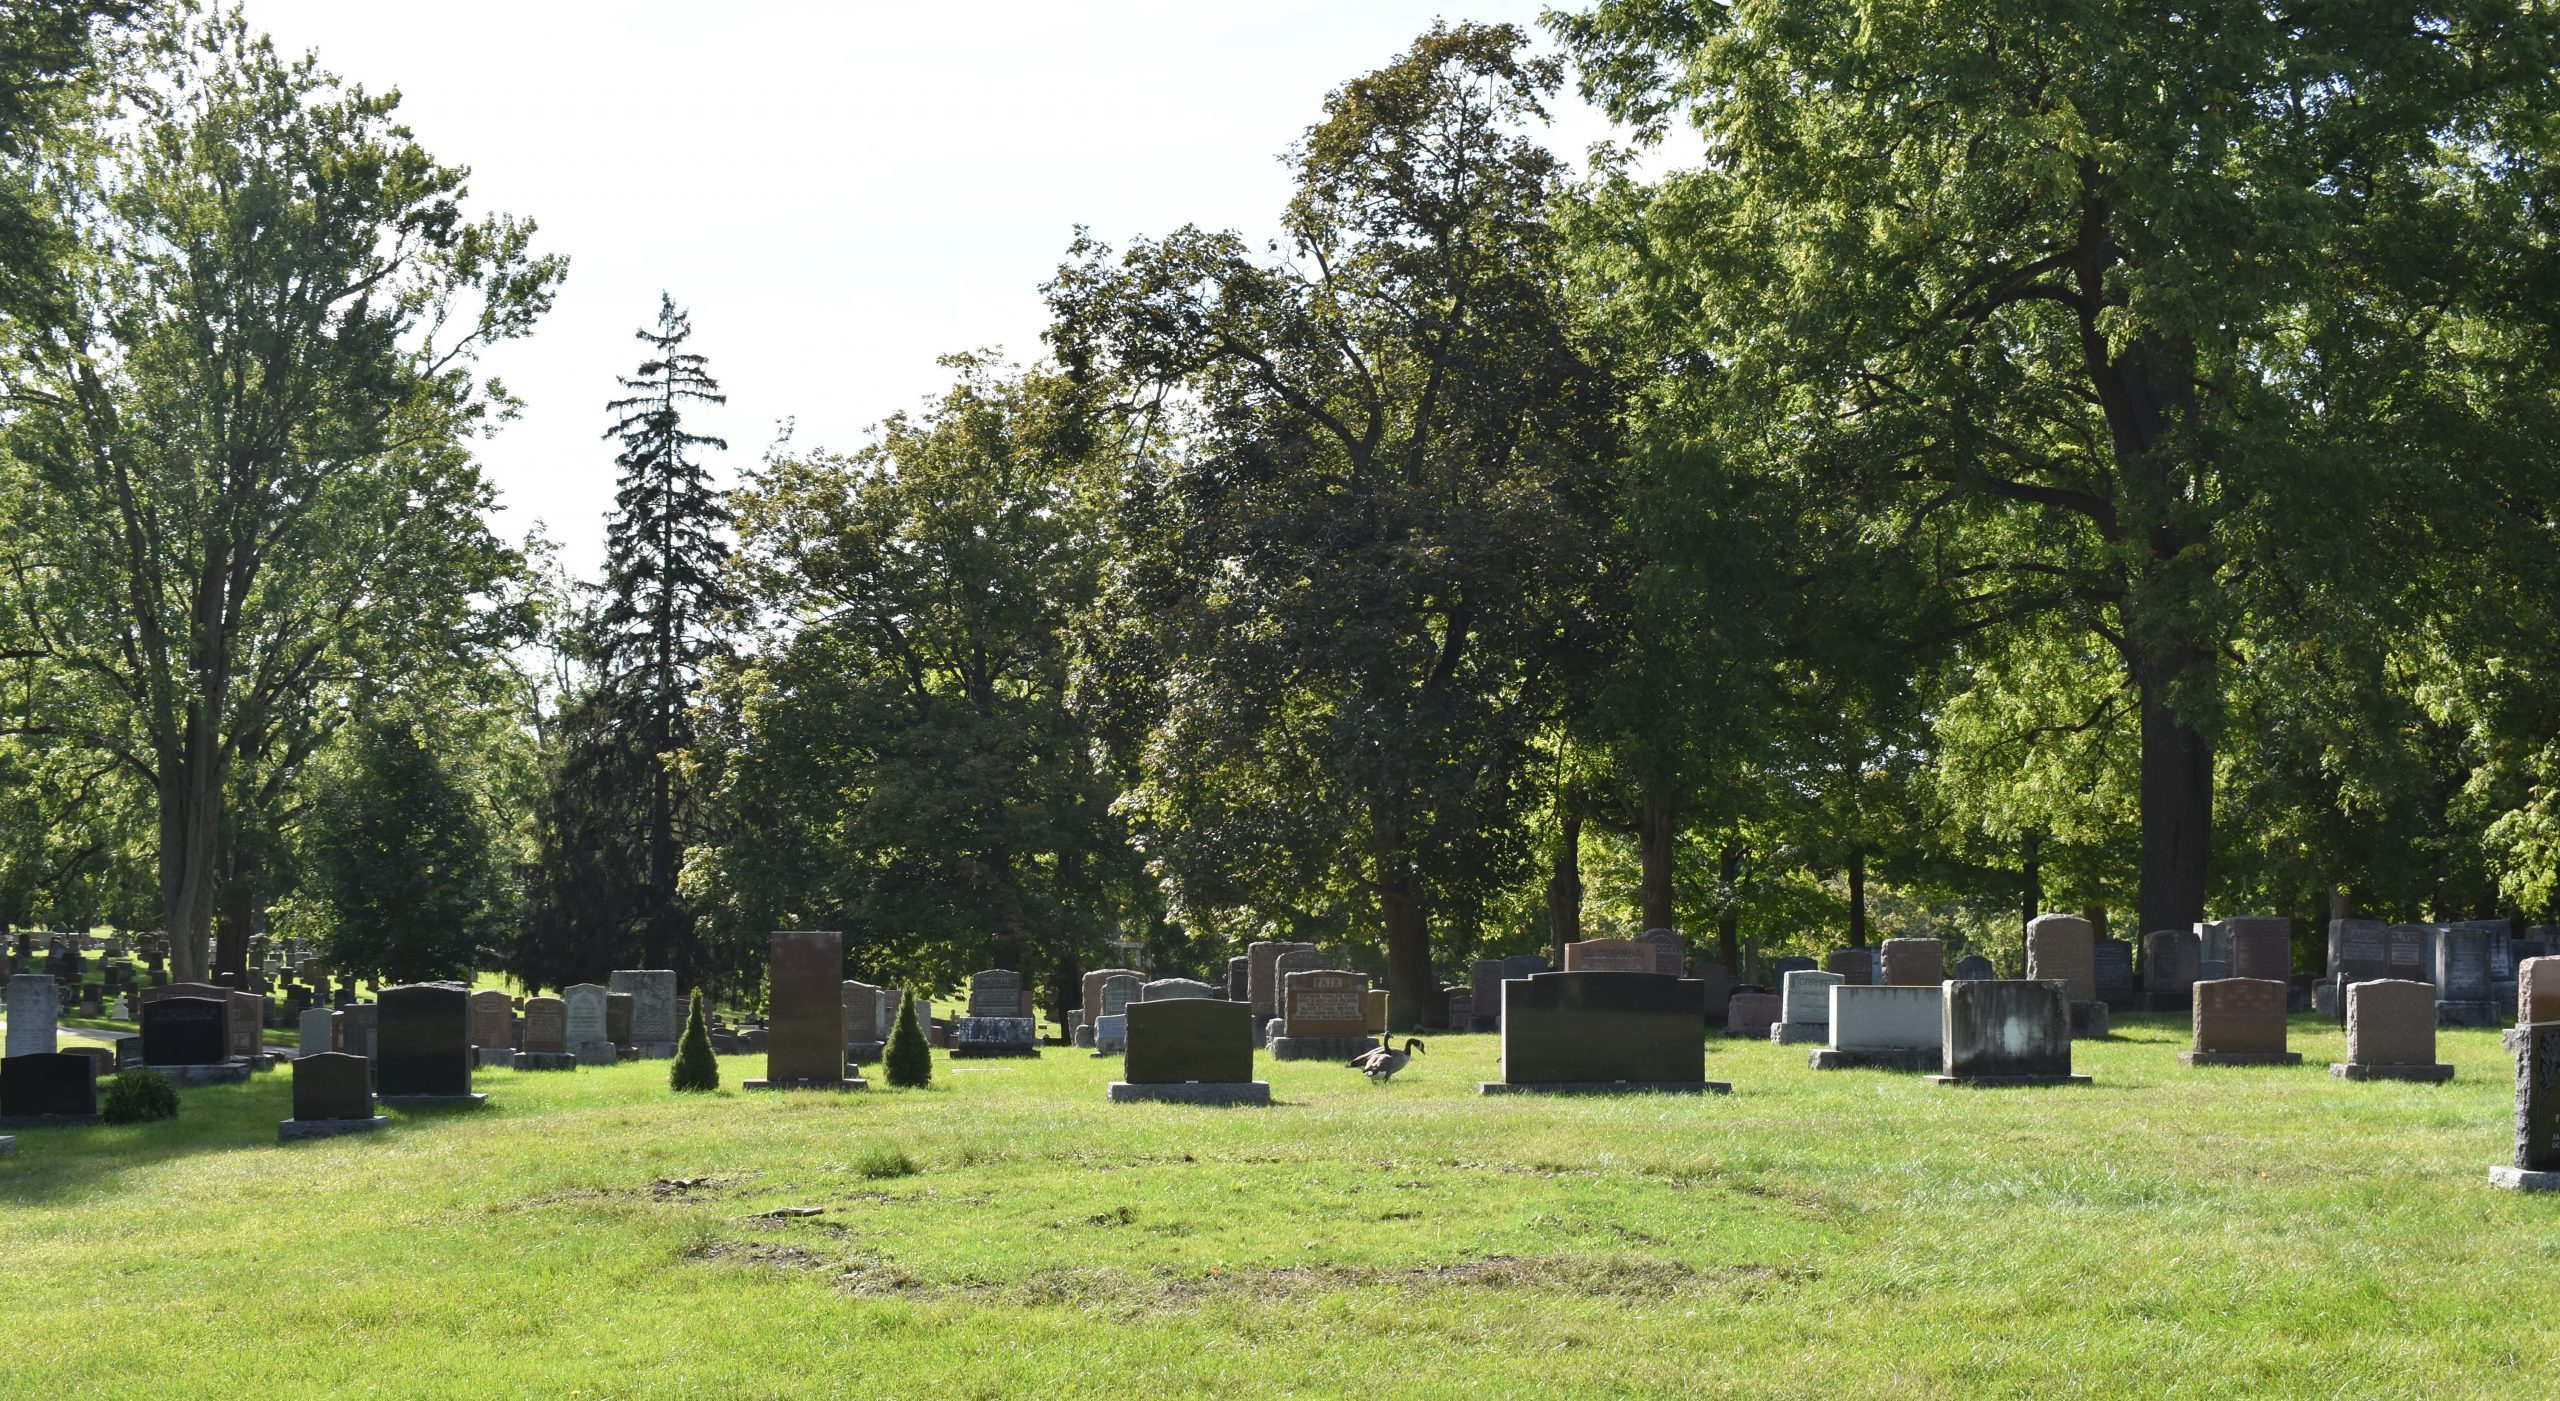 Canadian geese walk among graves in Woodland Cemetery